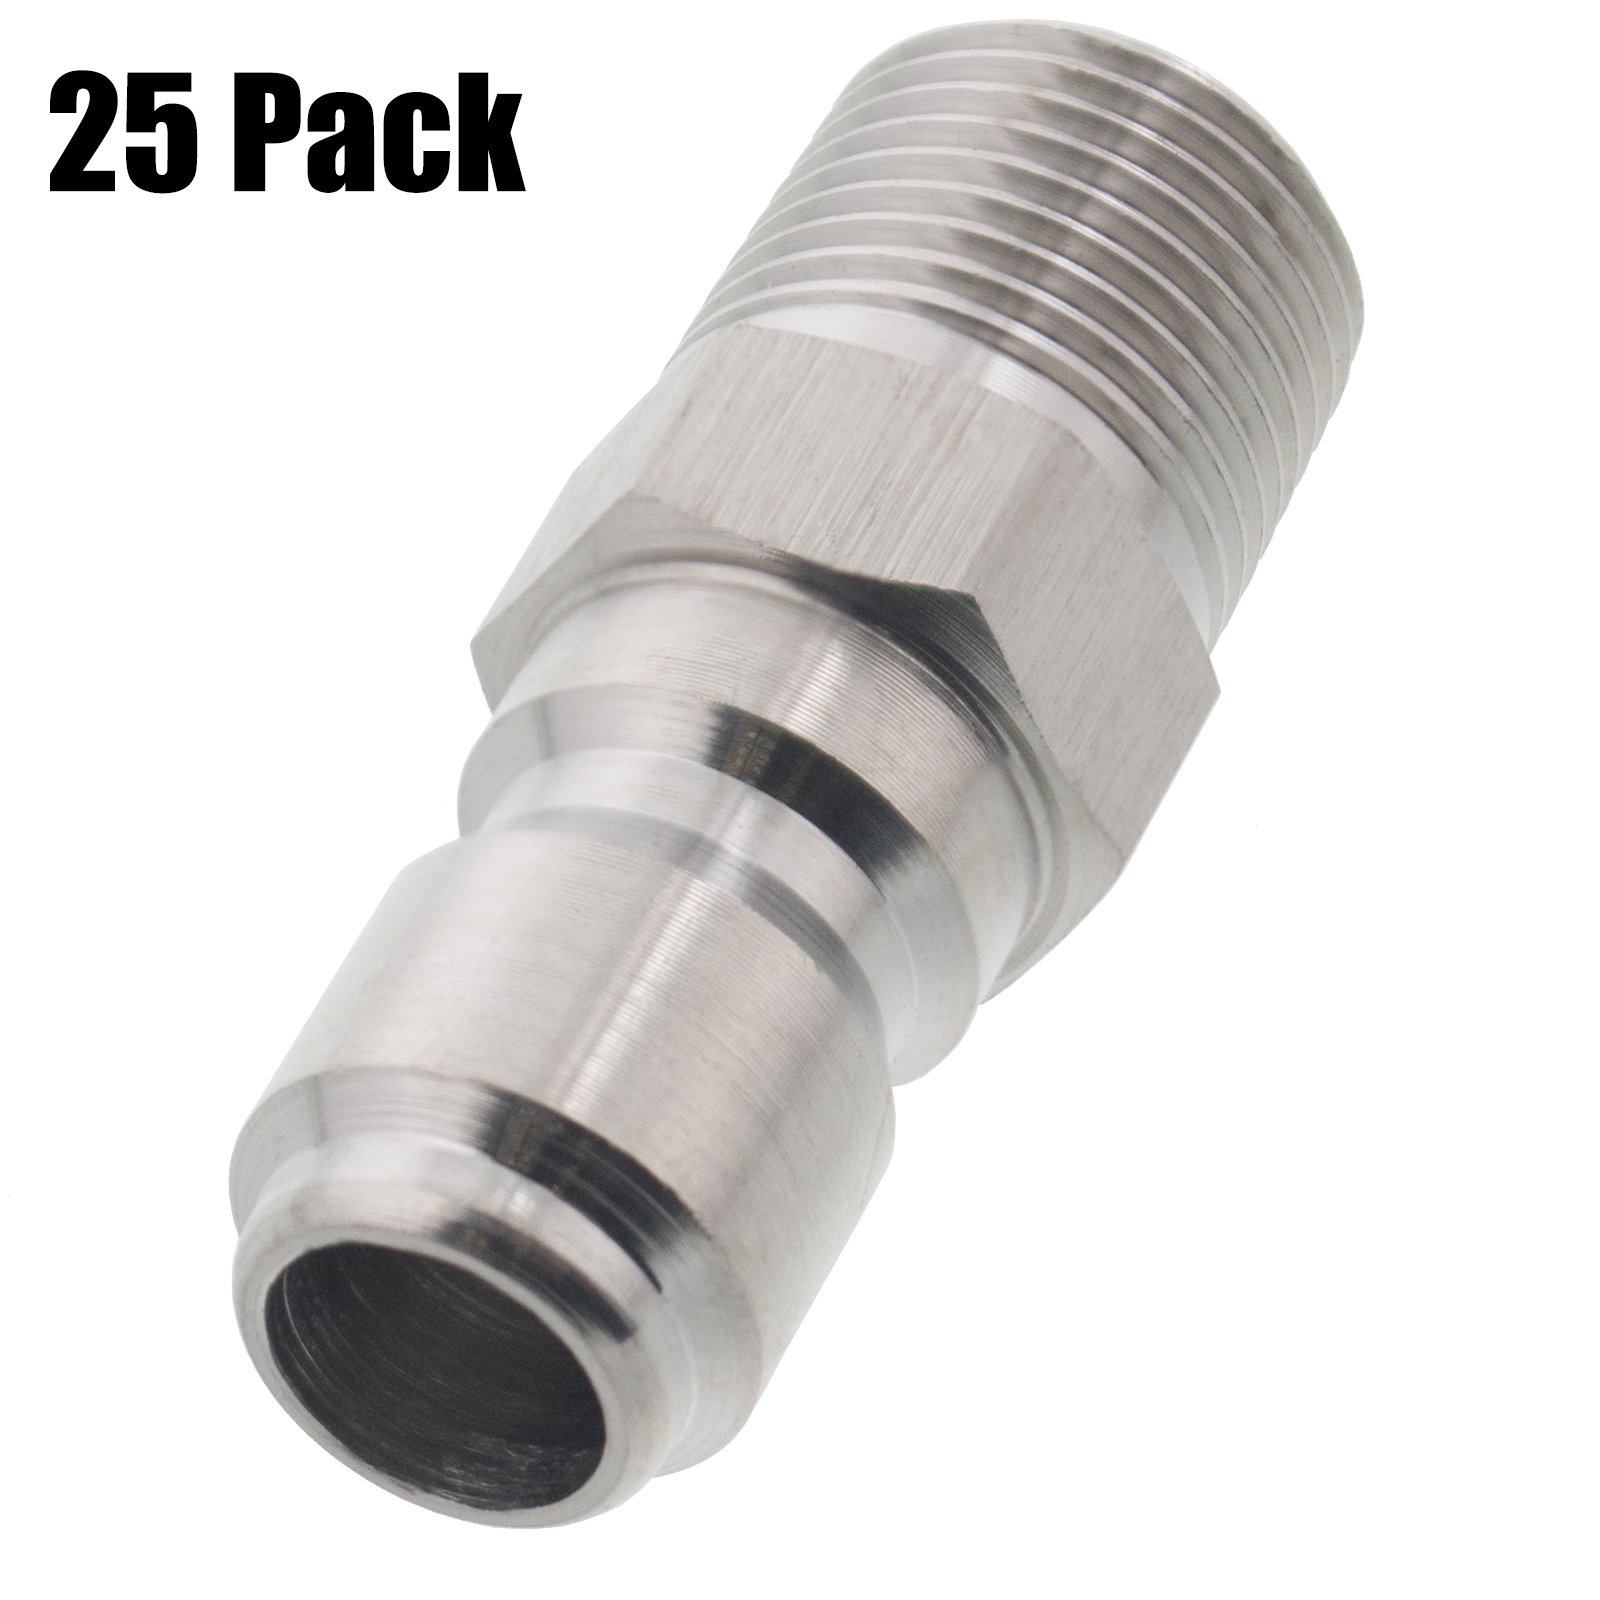 Erie Tools 25 Pressure Washer 3/8 Male NPT to Quick Connect Plug Stainless Steel Coupler, High Temp, 5000 PSI, 10.5 GPM